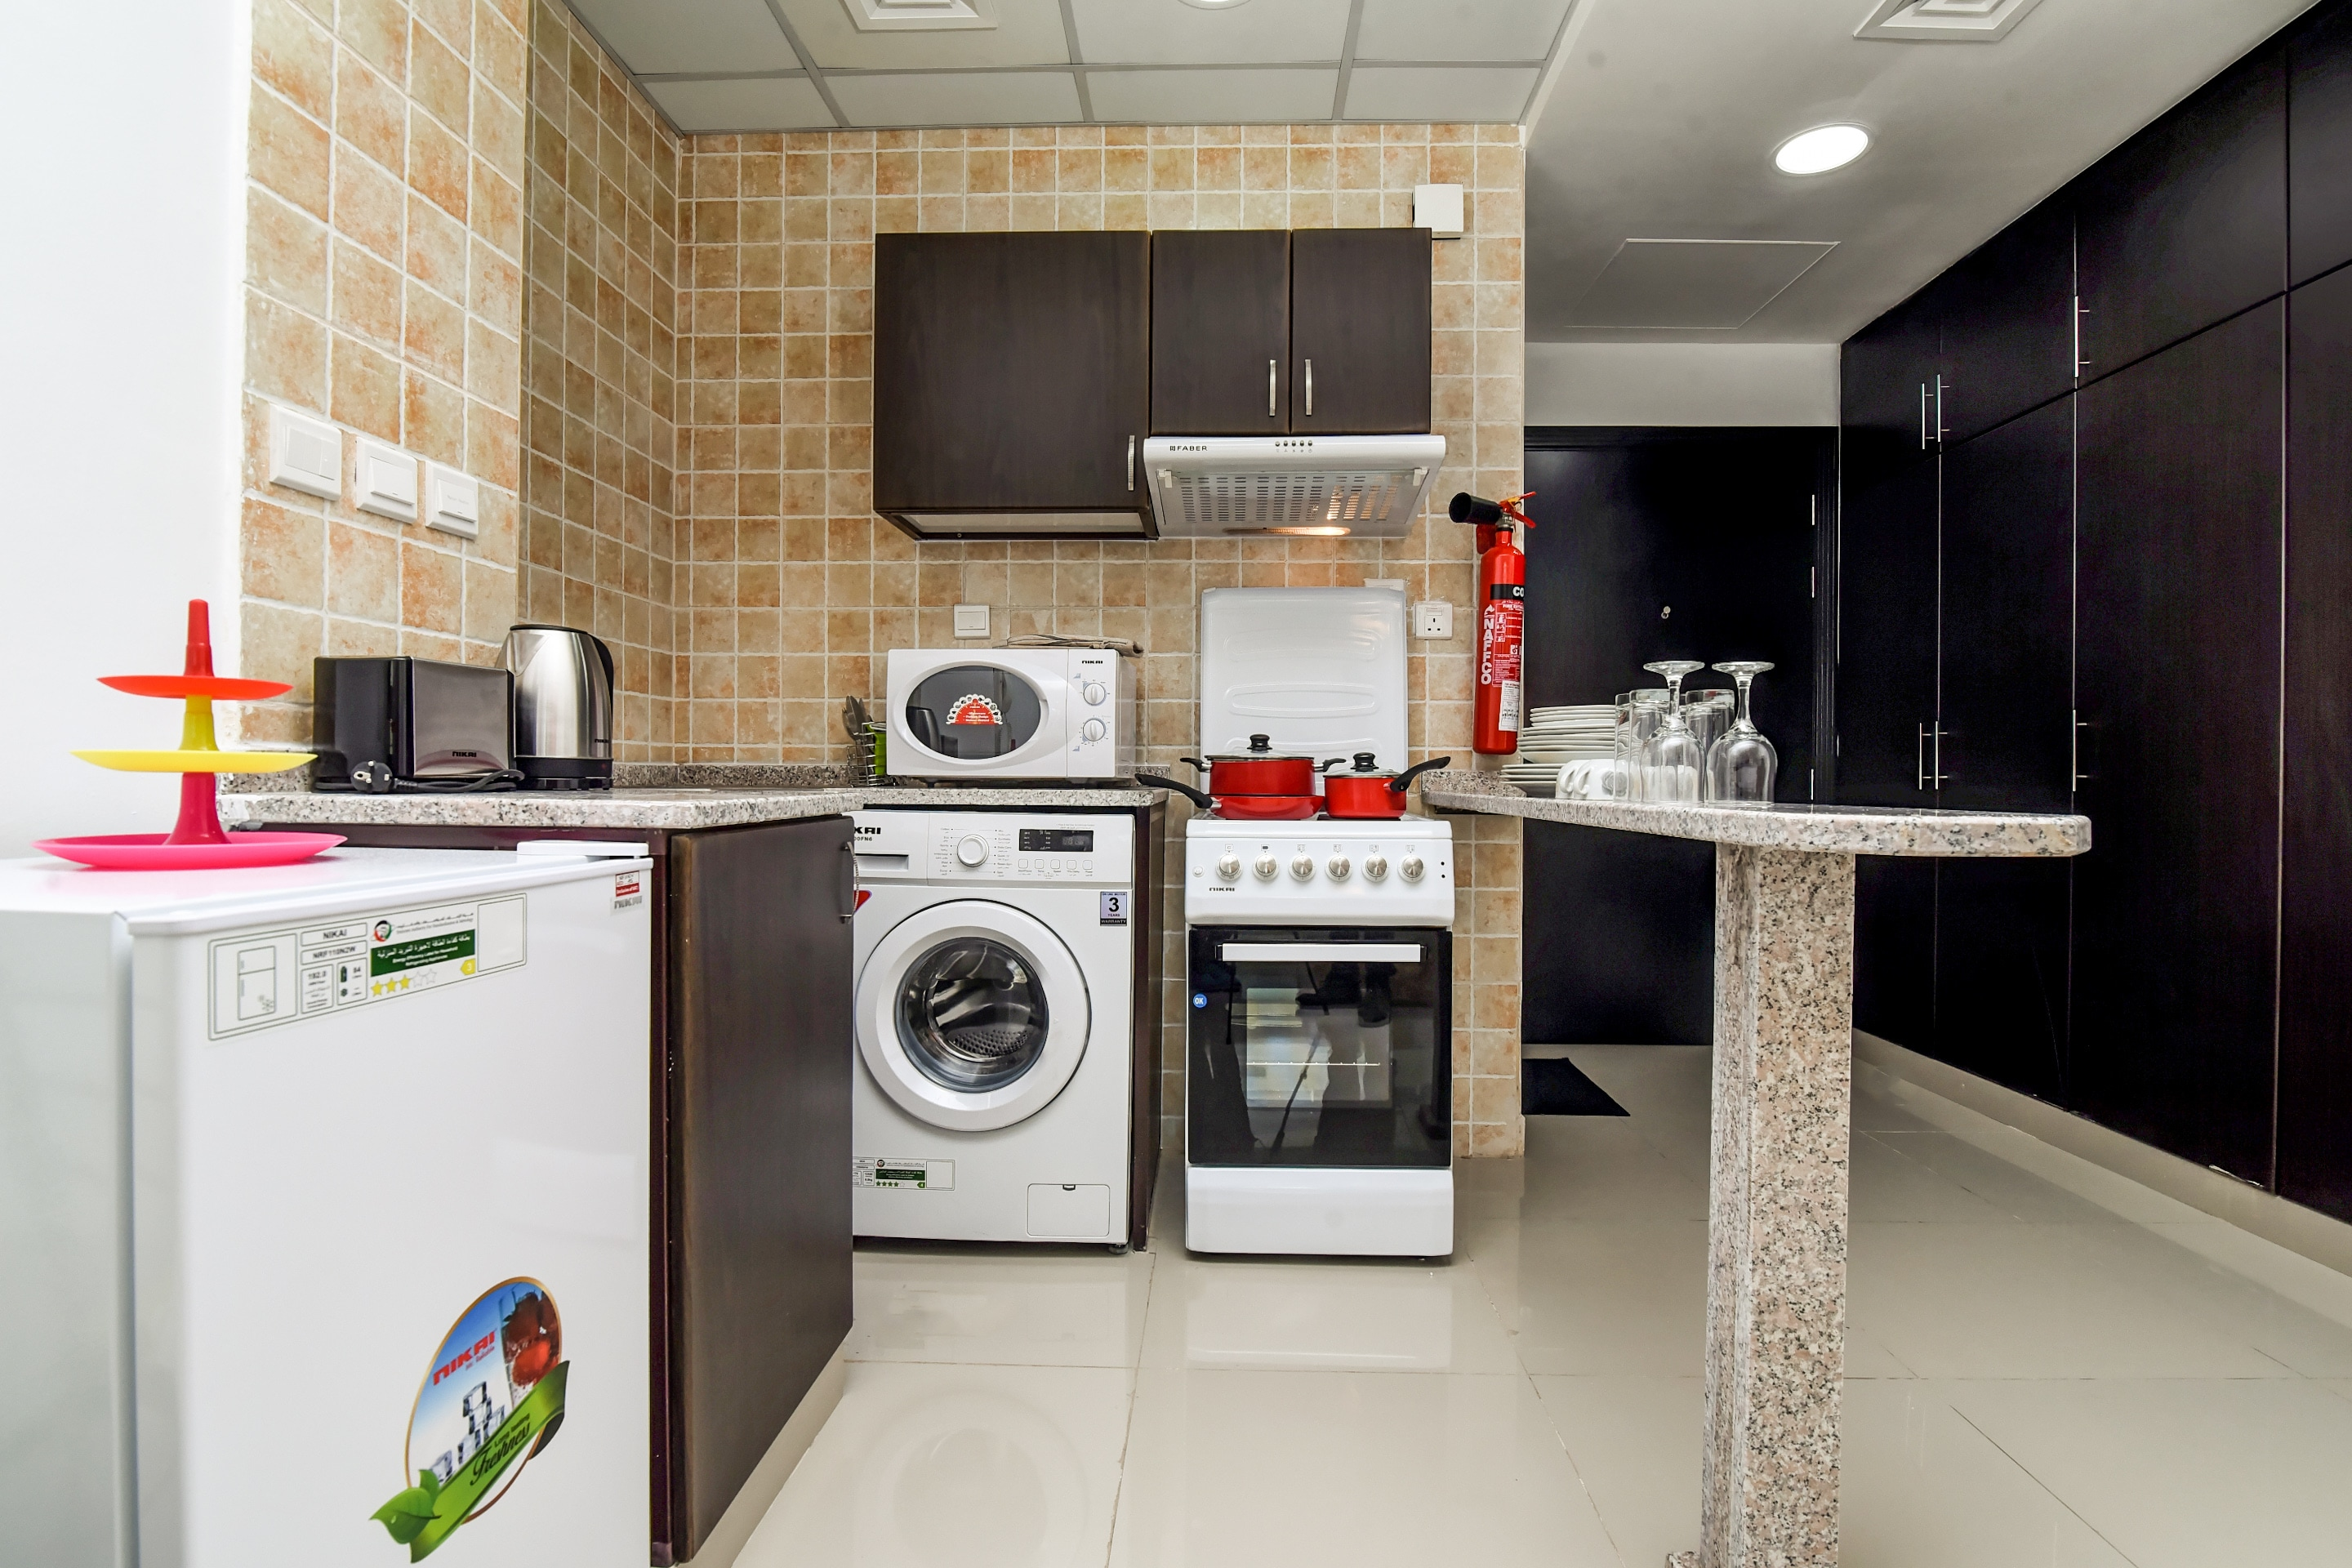 OYO Home 144 Sheikh Zayed View Apartments